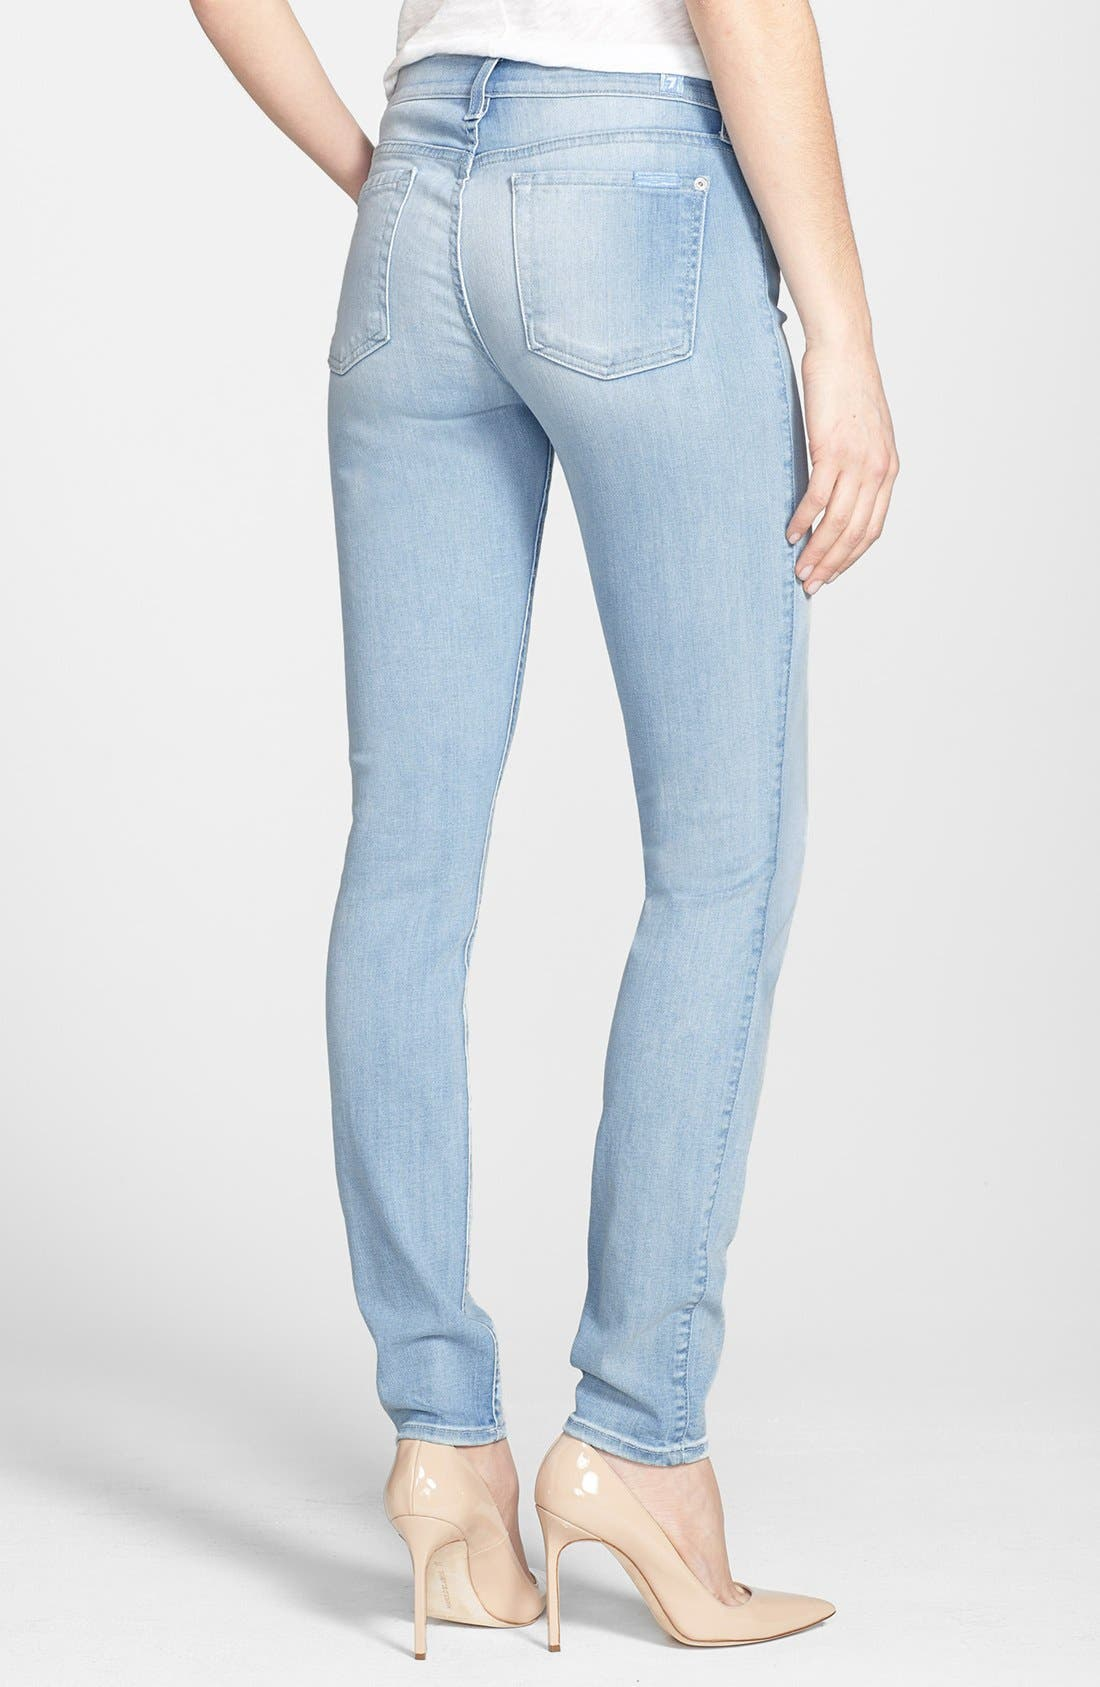 Alternate Image 2  - 7 For All Mankind® 'The Skinny' Mid Rise Jeans (Sky Blue)